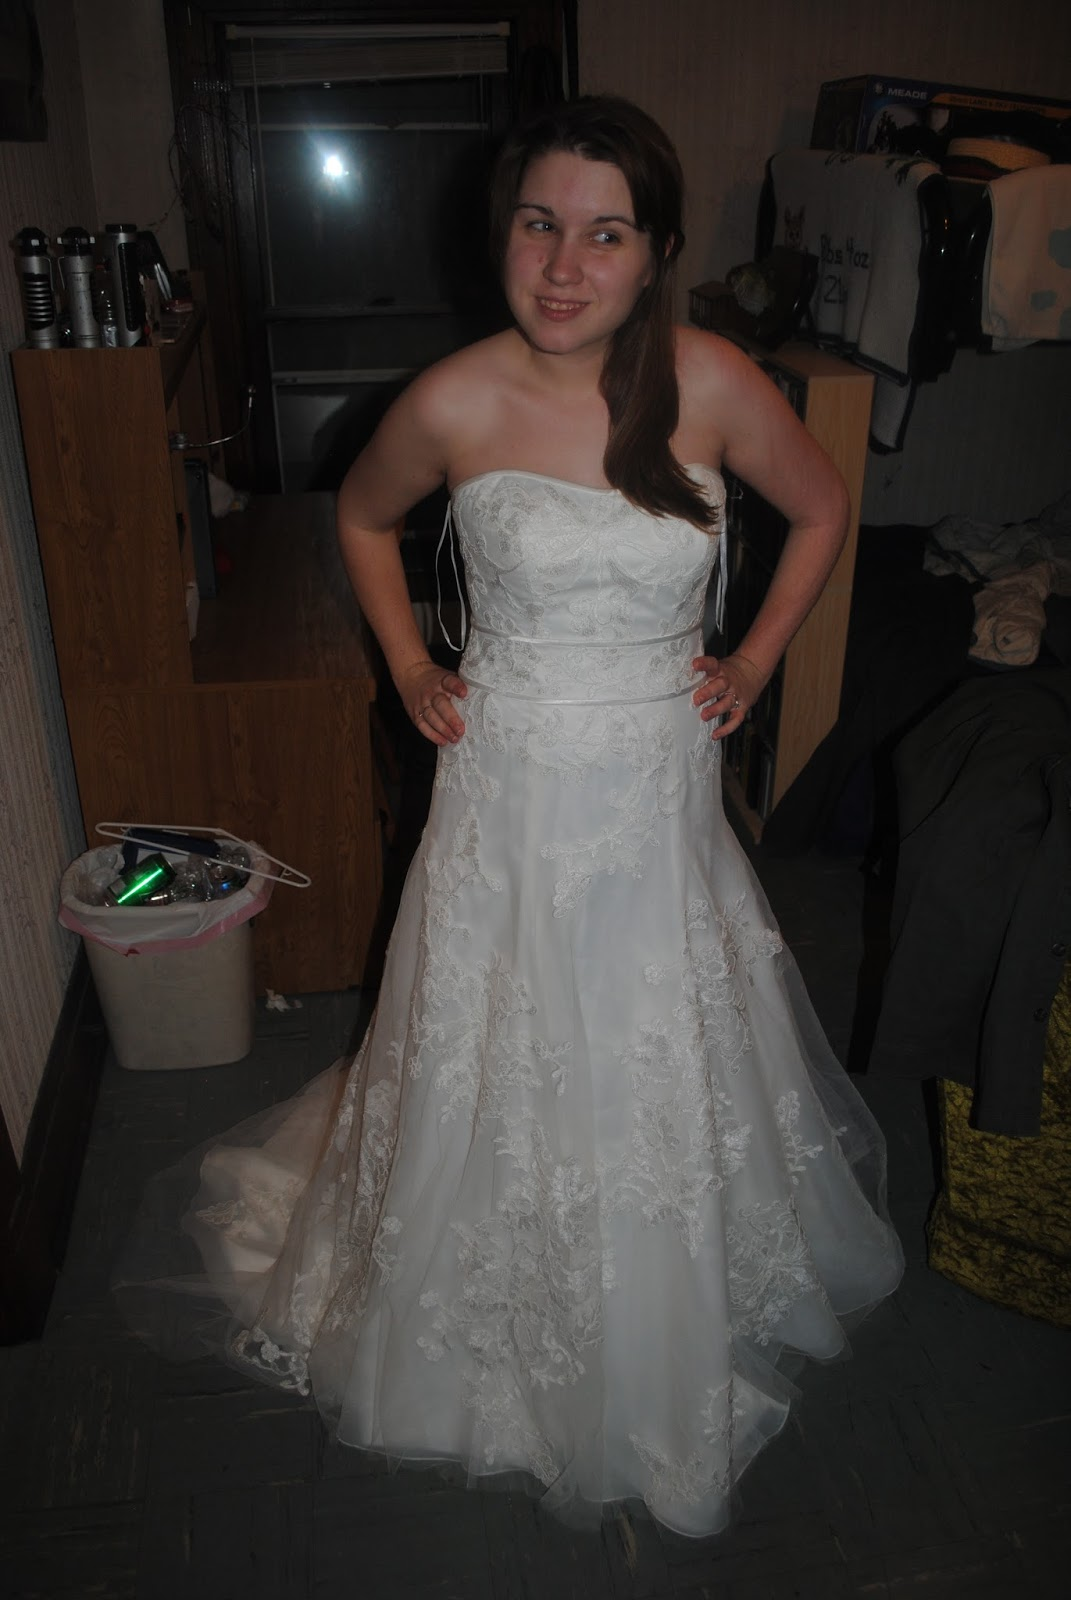 Wedding wednesday where to donate your wedding dress sunshine i know i have a dress i bought on super clearance paniclike 70 off that has been sitting in a closet since 2012 i am offering it on buy nothing ombrellifo Images